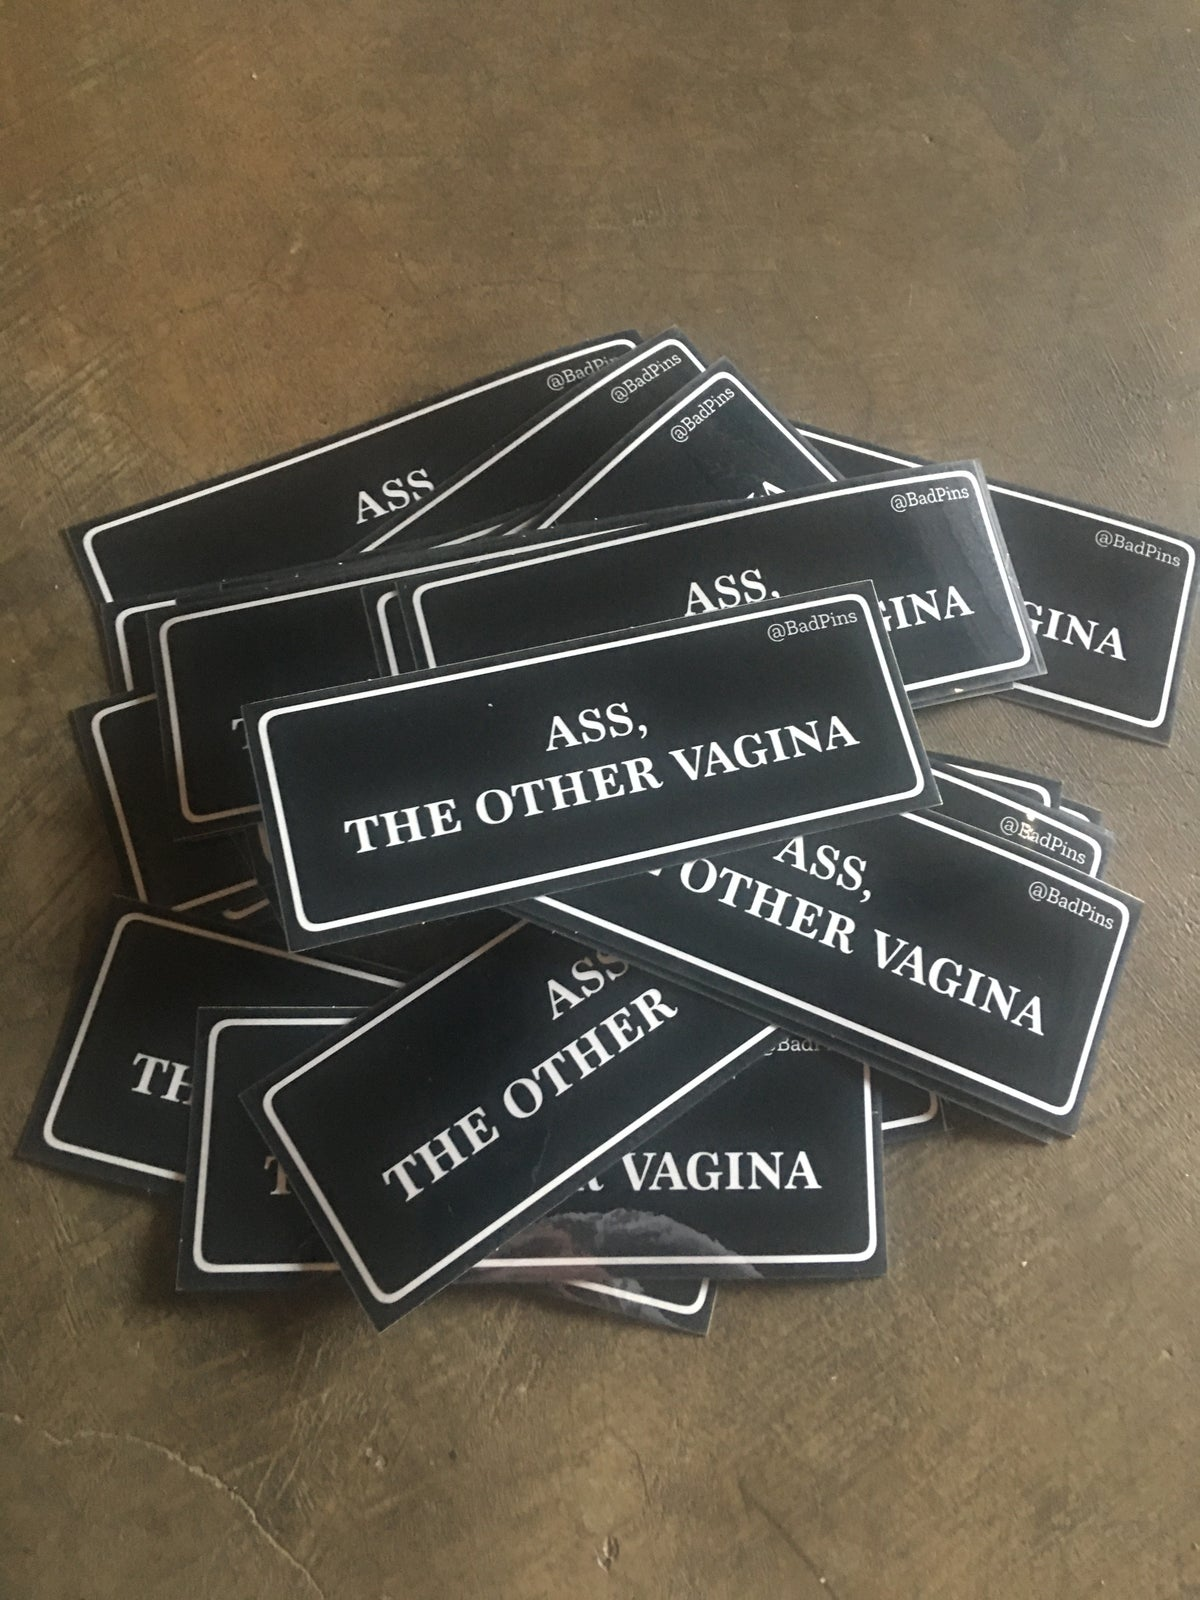 Image of Ass, The Other Vagina 5 Inch sticker